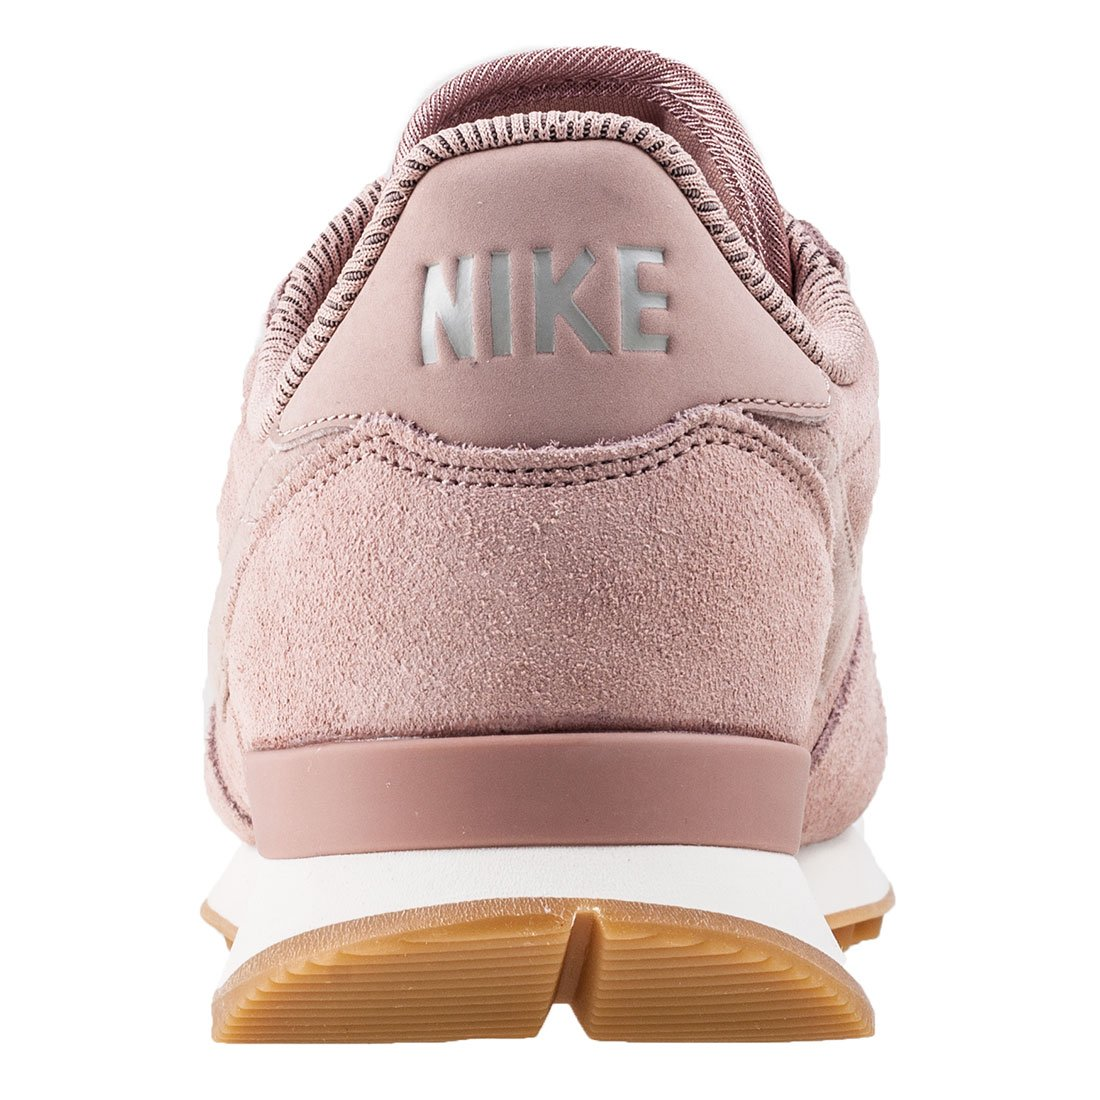 Special Internationalist Edition Damen Ledertextil Nike Pink Sneaker mnyv8wN0O